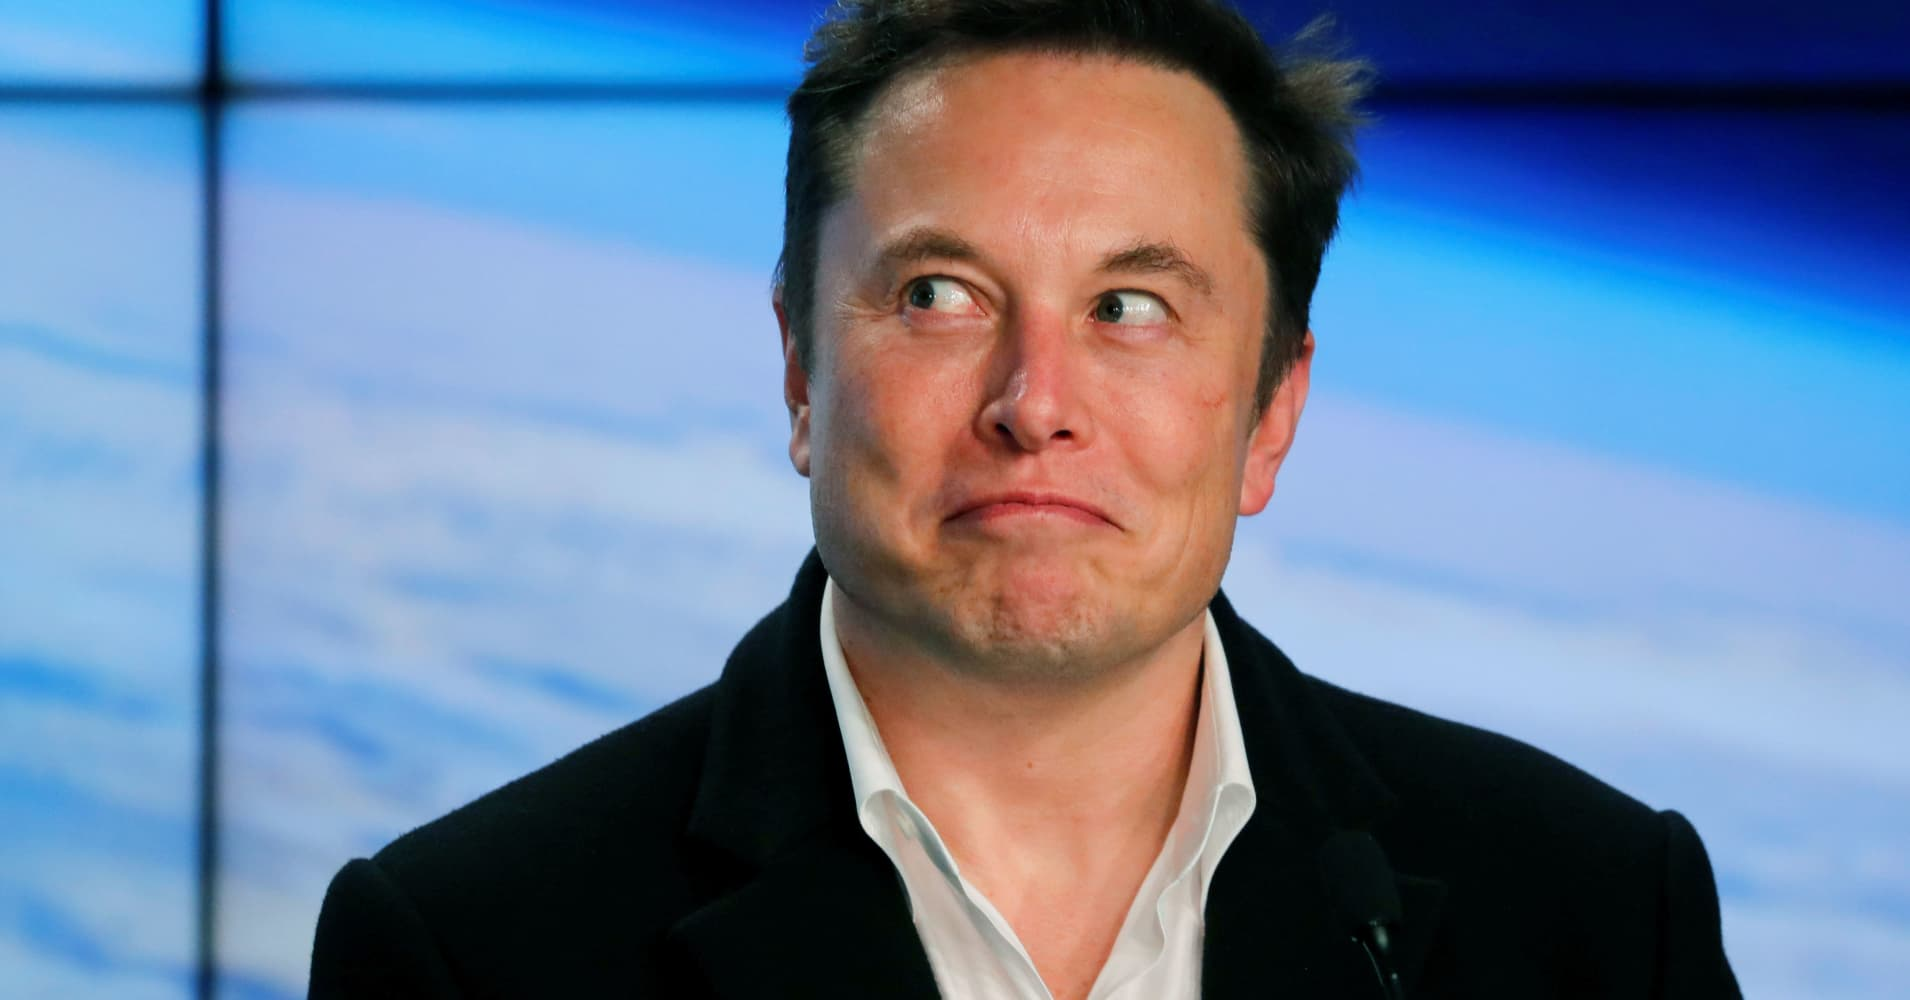 Elon Musk Touted a Lenient Return Policy for Tesla, but Customers Should Read the Fine Print